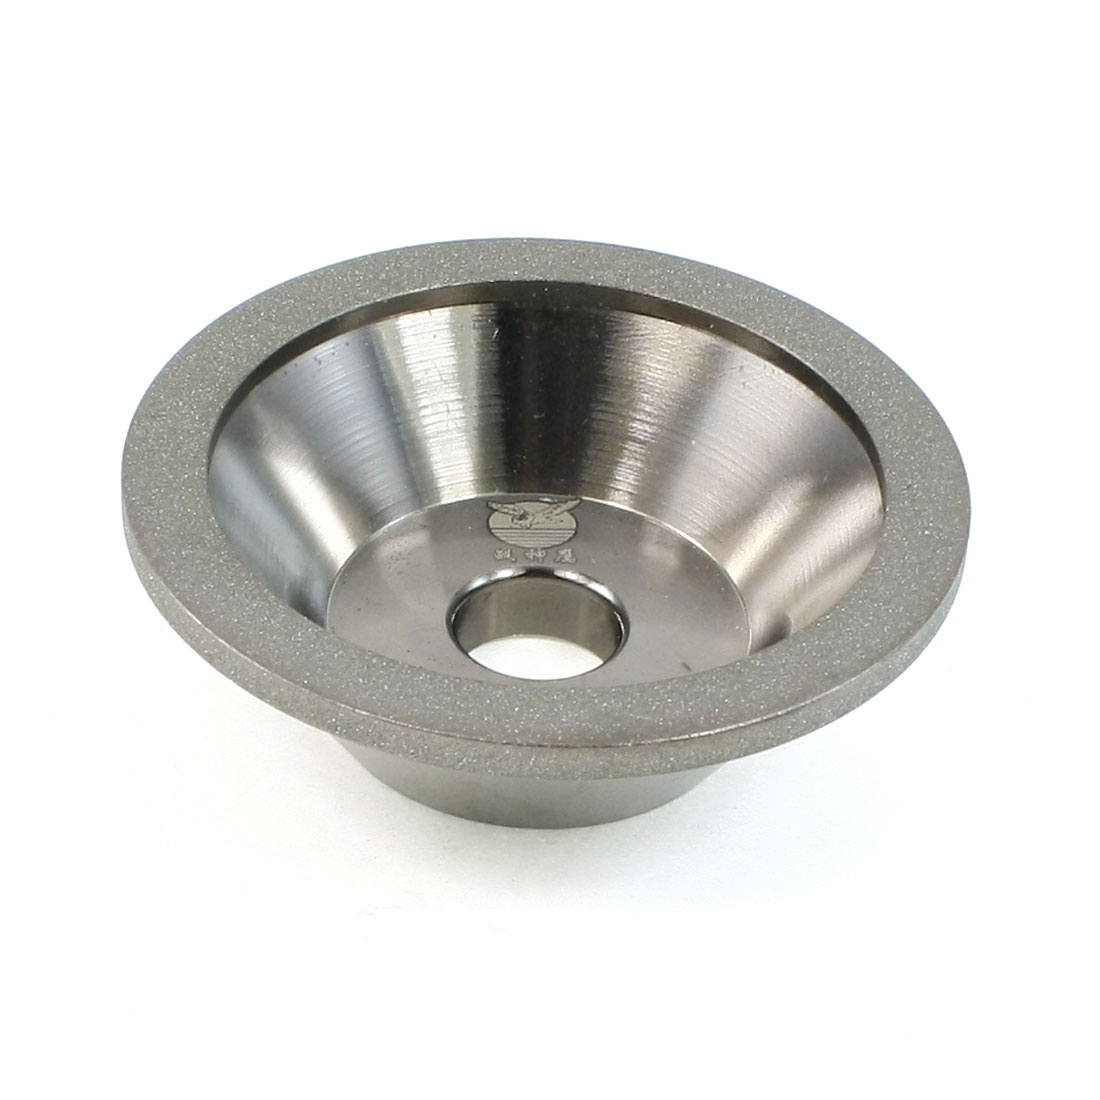 100mm Outside Dia 35mm Thickness Bowl Shape Diamond CBN Grinding Wheels 200#